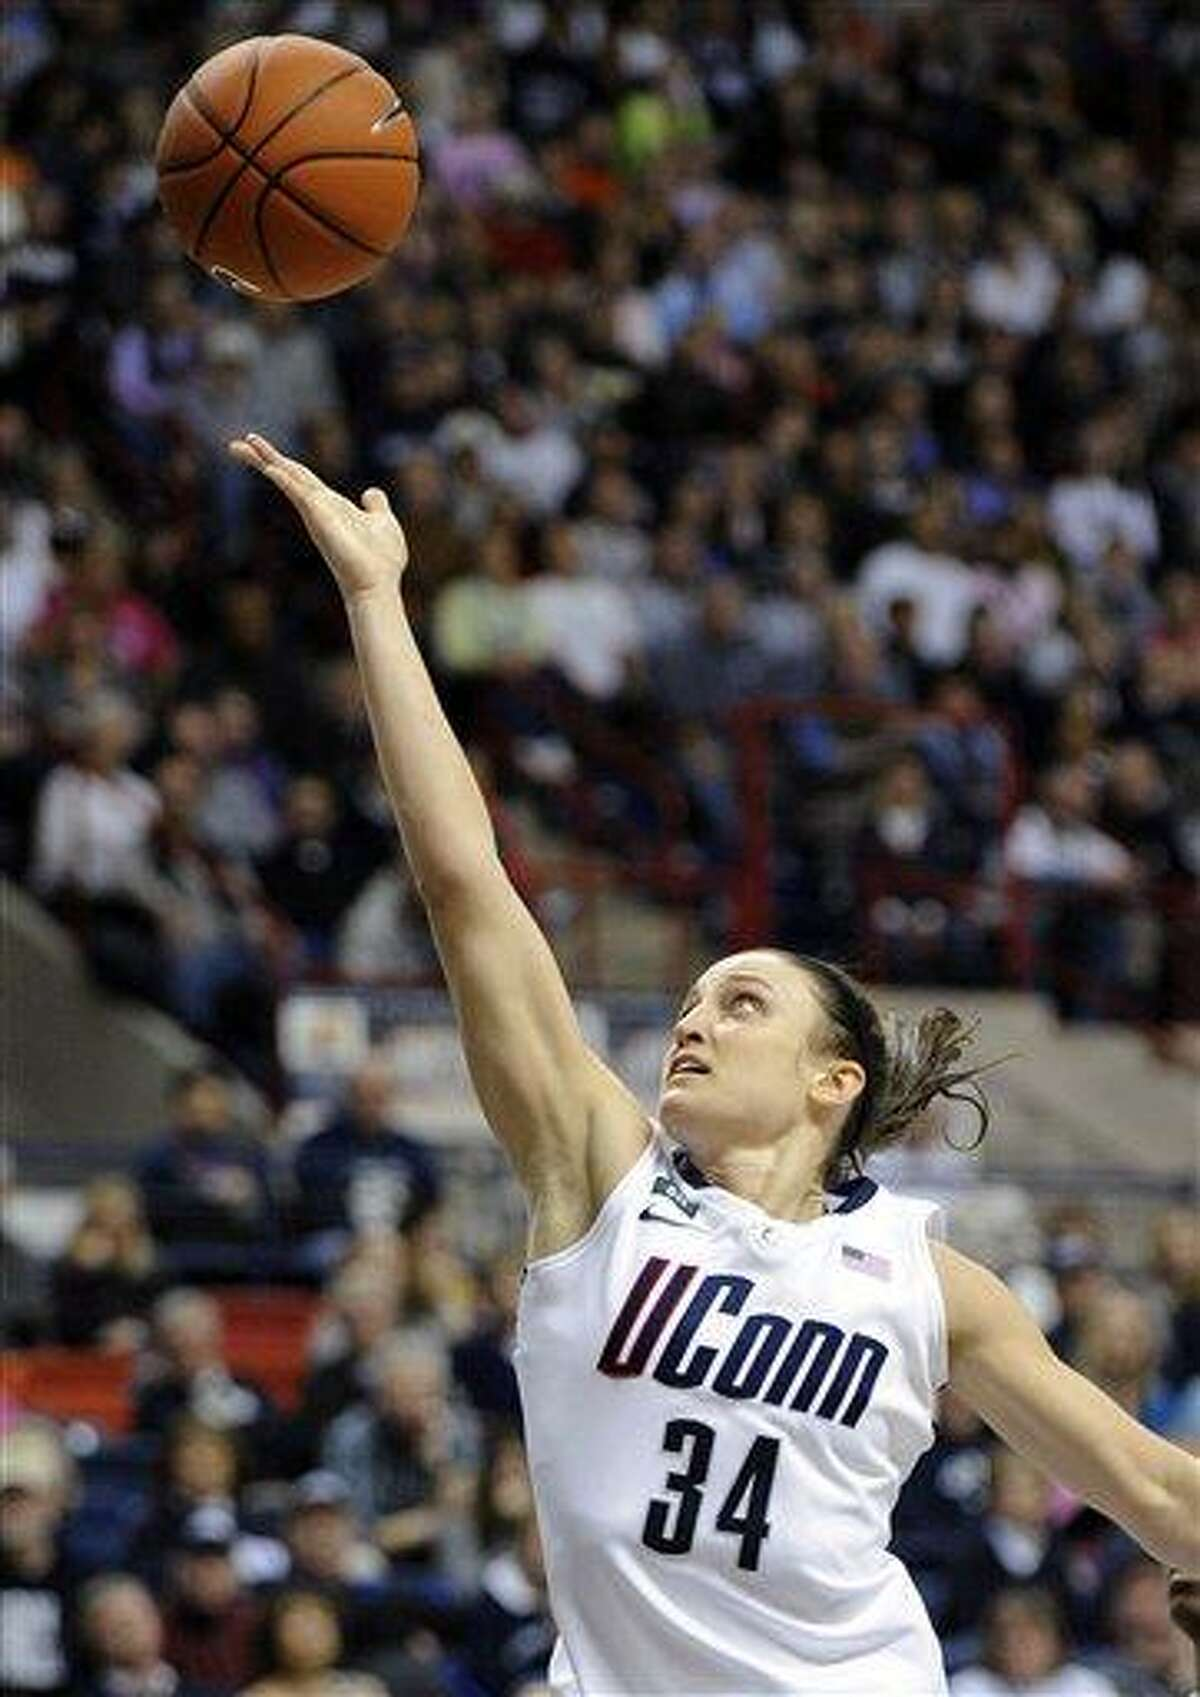 Connecticut's Kelly Faris scores her 1000th career point during the second half of her team's 90-30 victory over Seton Hall in an NCAA college basketball game in Storrs, Conn., Saturday, Feb. 23, 2013. Faris scored a game-high 18 points in the win. (AP Photo/Fred Beckham)